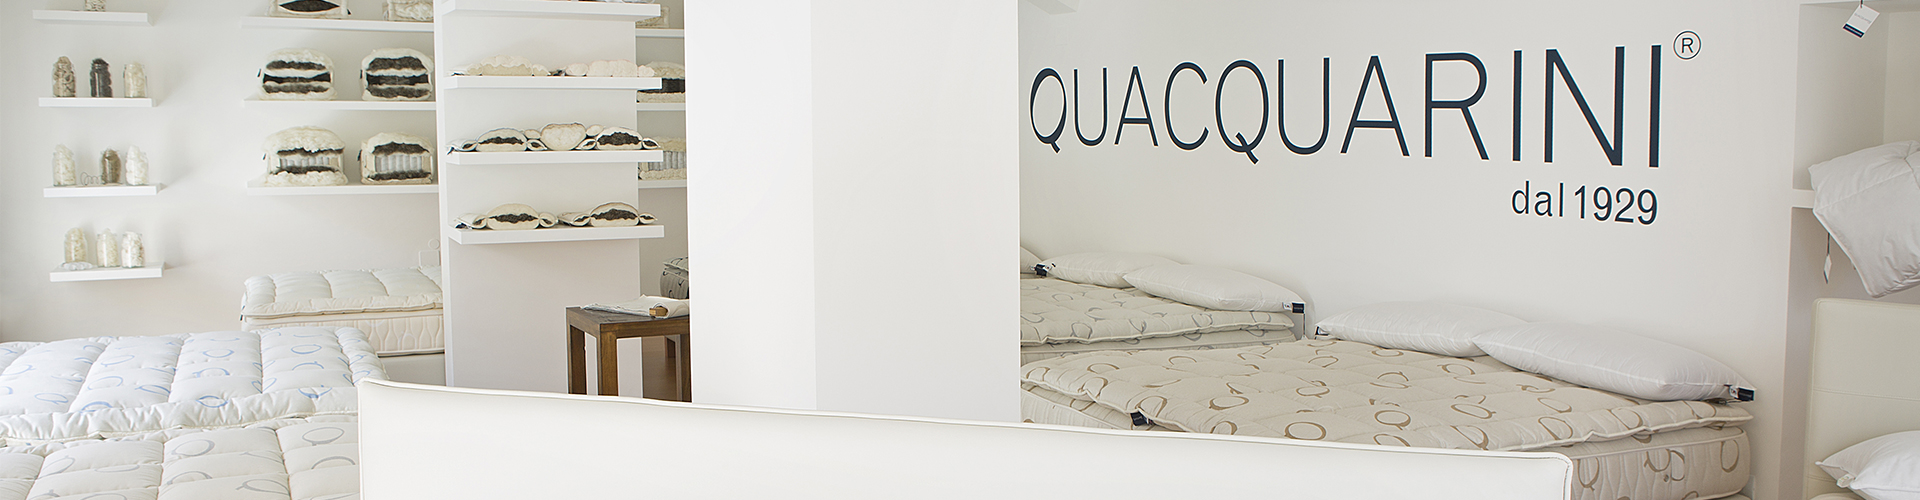 quacquarini showroom